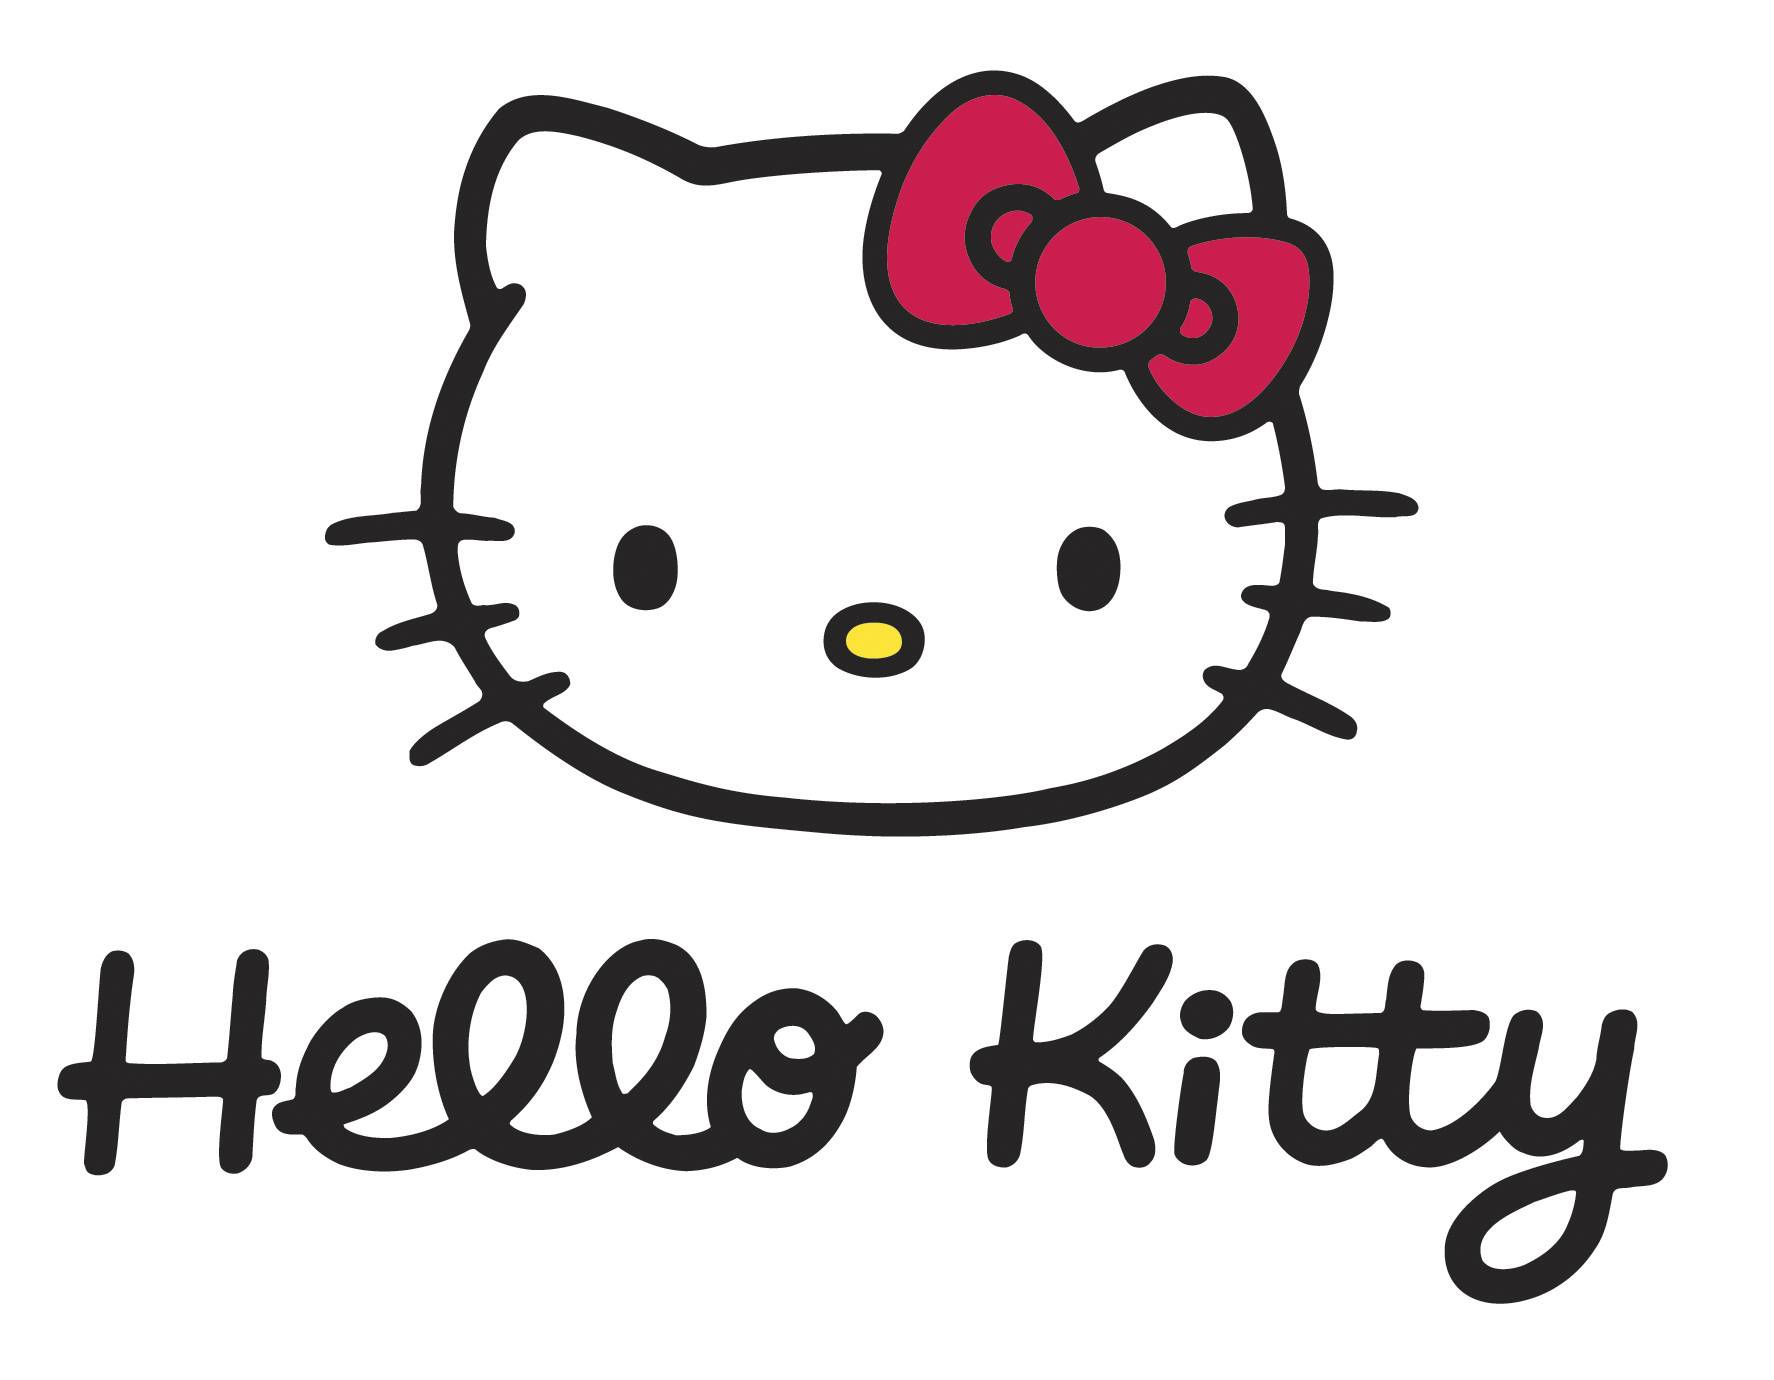 Hello Kitty Wallpapers For Iphone For Desktop Wallpaper   Cartoon 1774x1380